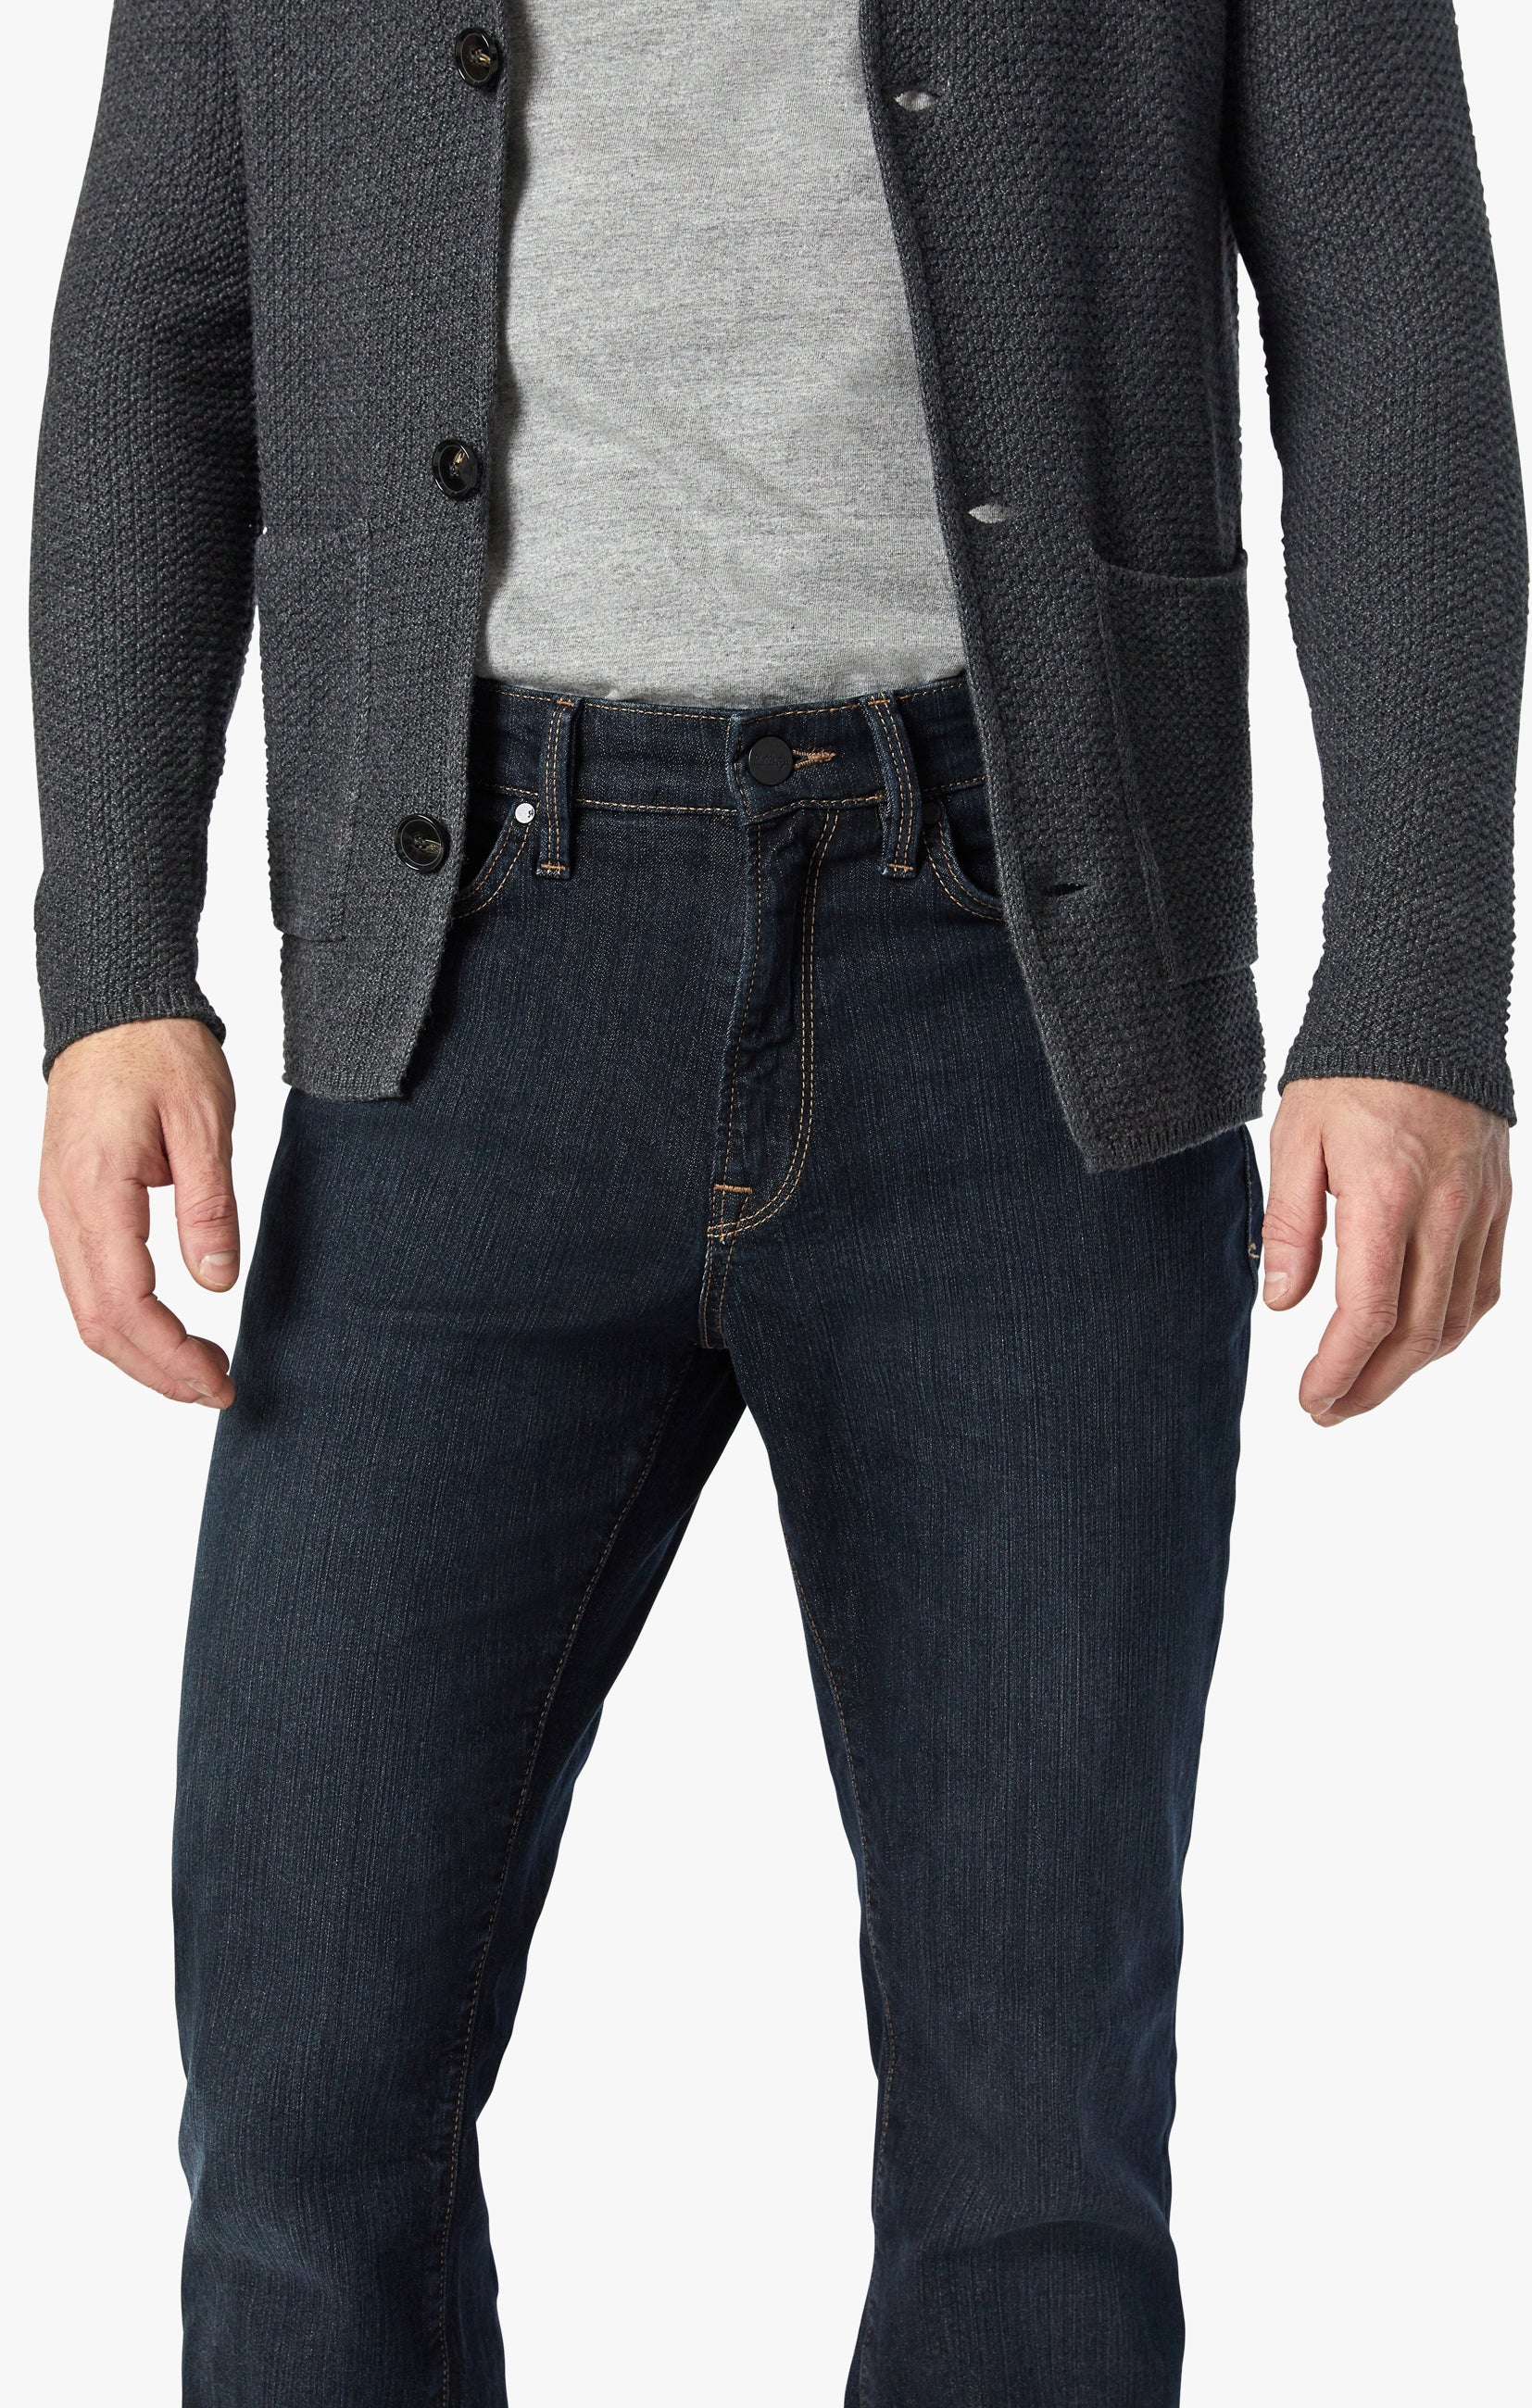 Charisma Relaxed Straight Jeans In Dark Comfort Image 5